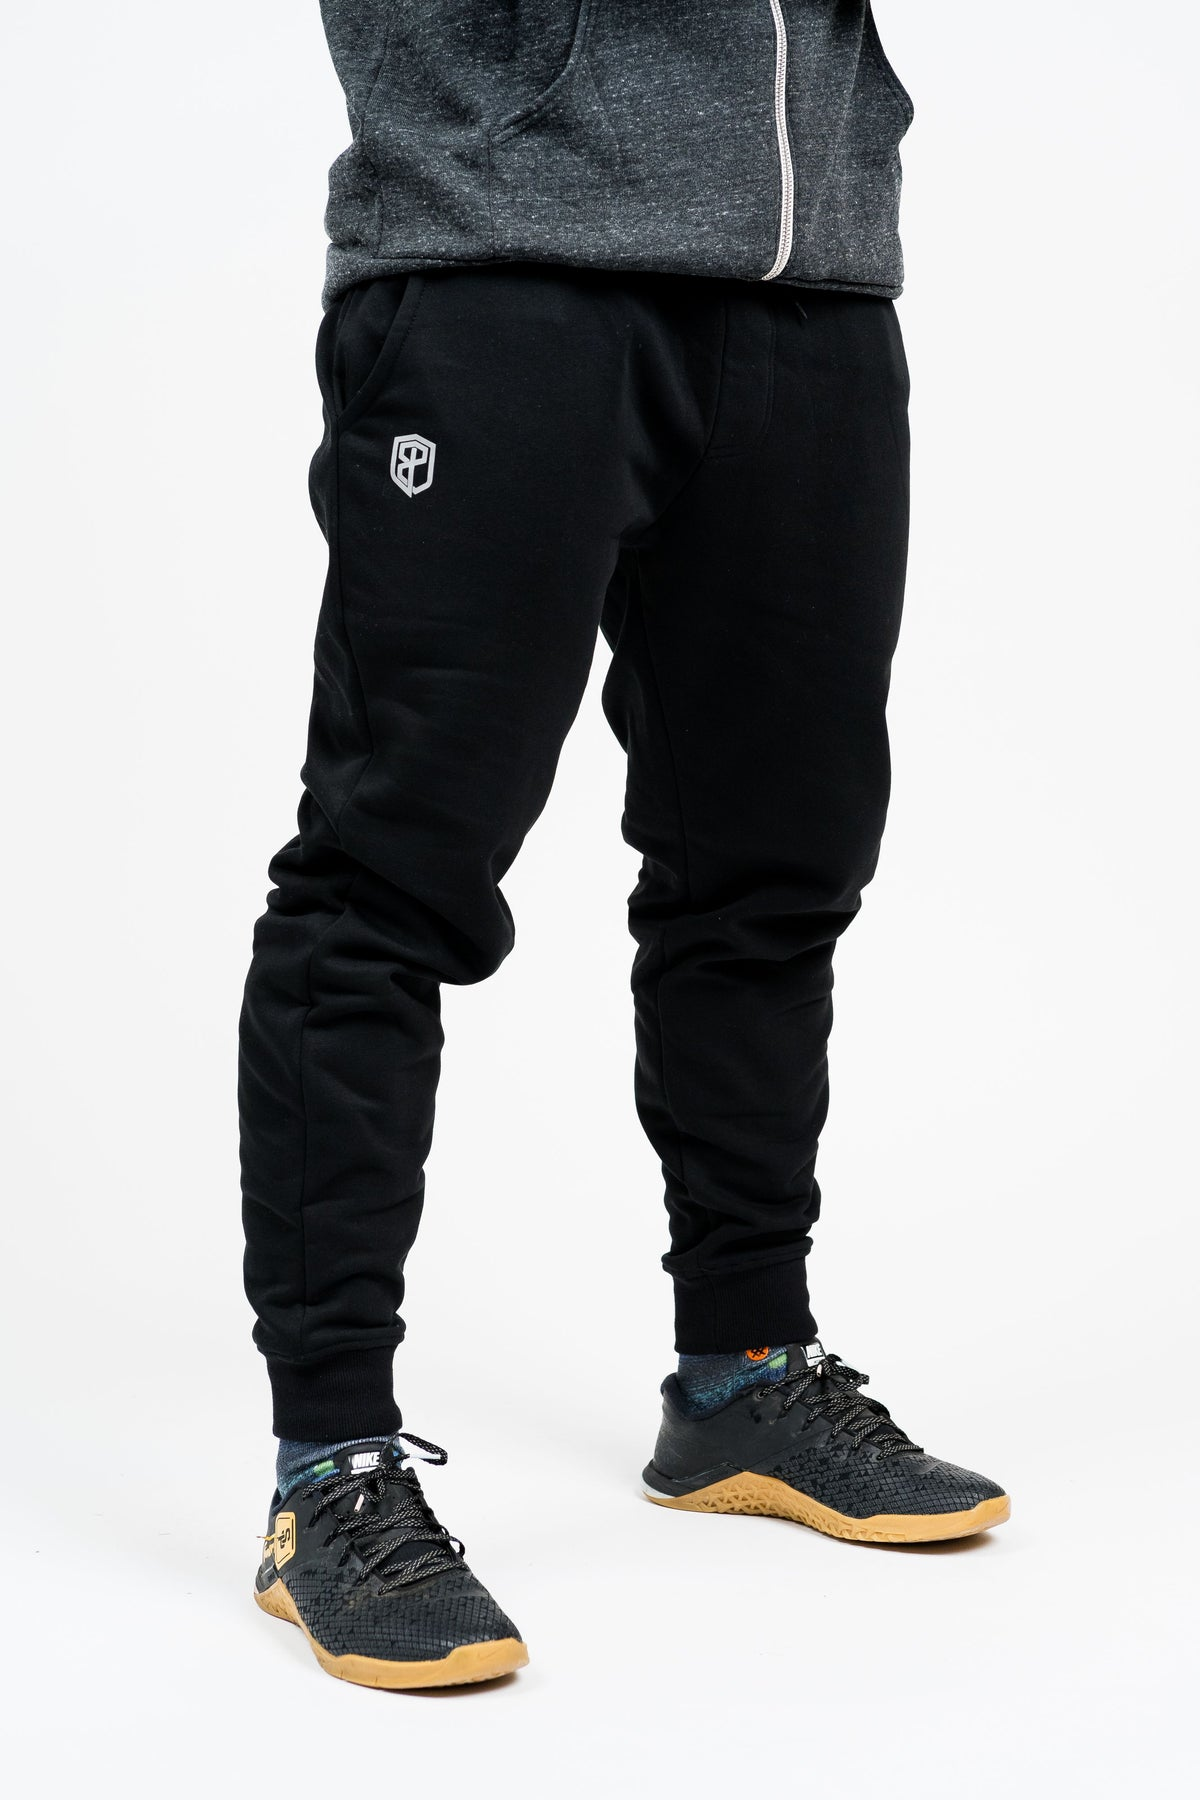 Born Primitive x SP Jogger - Male - Street Parking